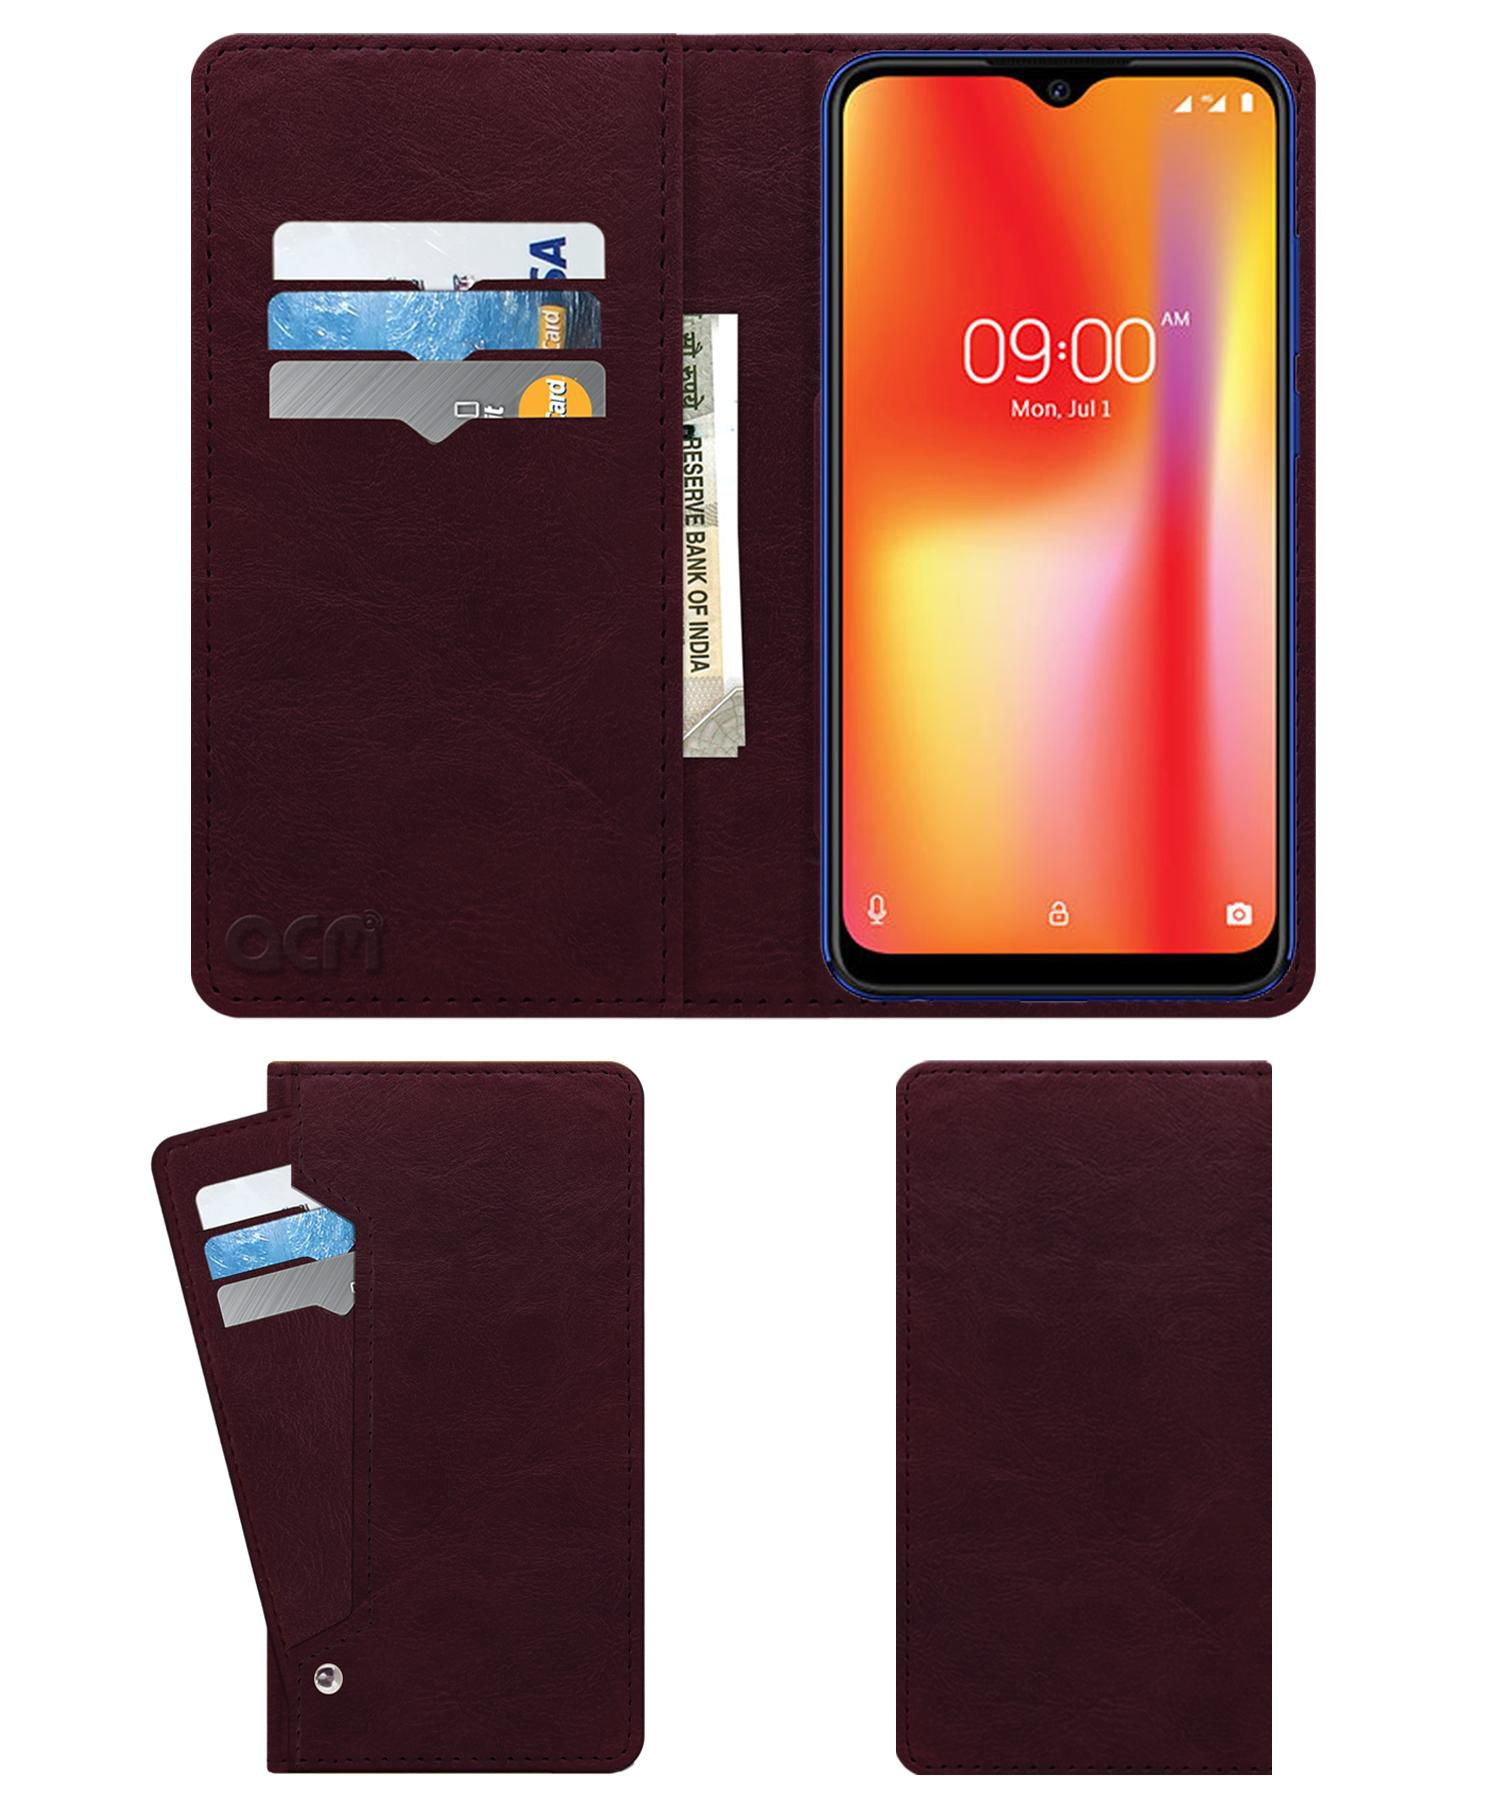 Lava Z93 Flip Cover by ACM - Red Wallet Case,Can store 6 Card & Cash,Burgundy Red